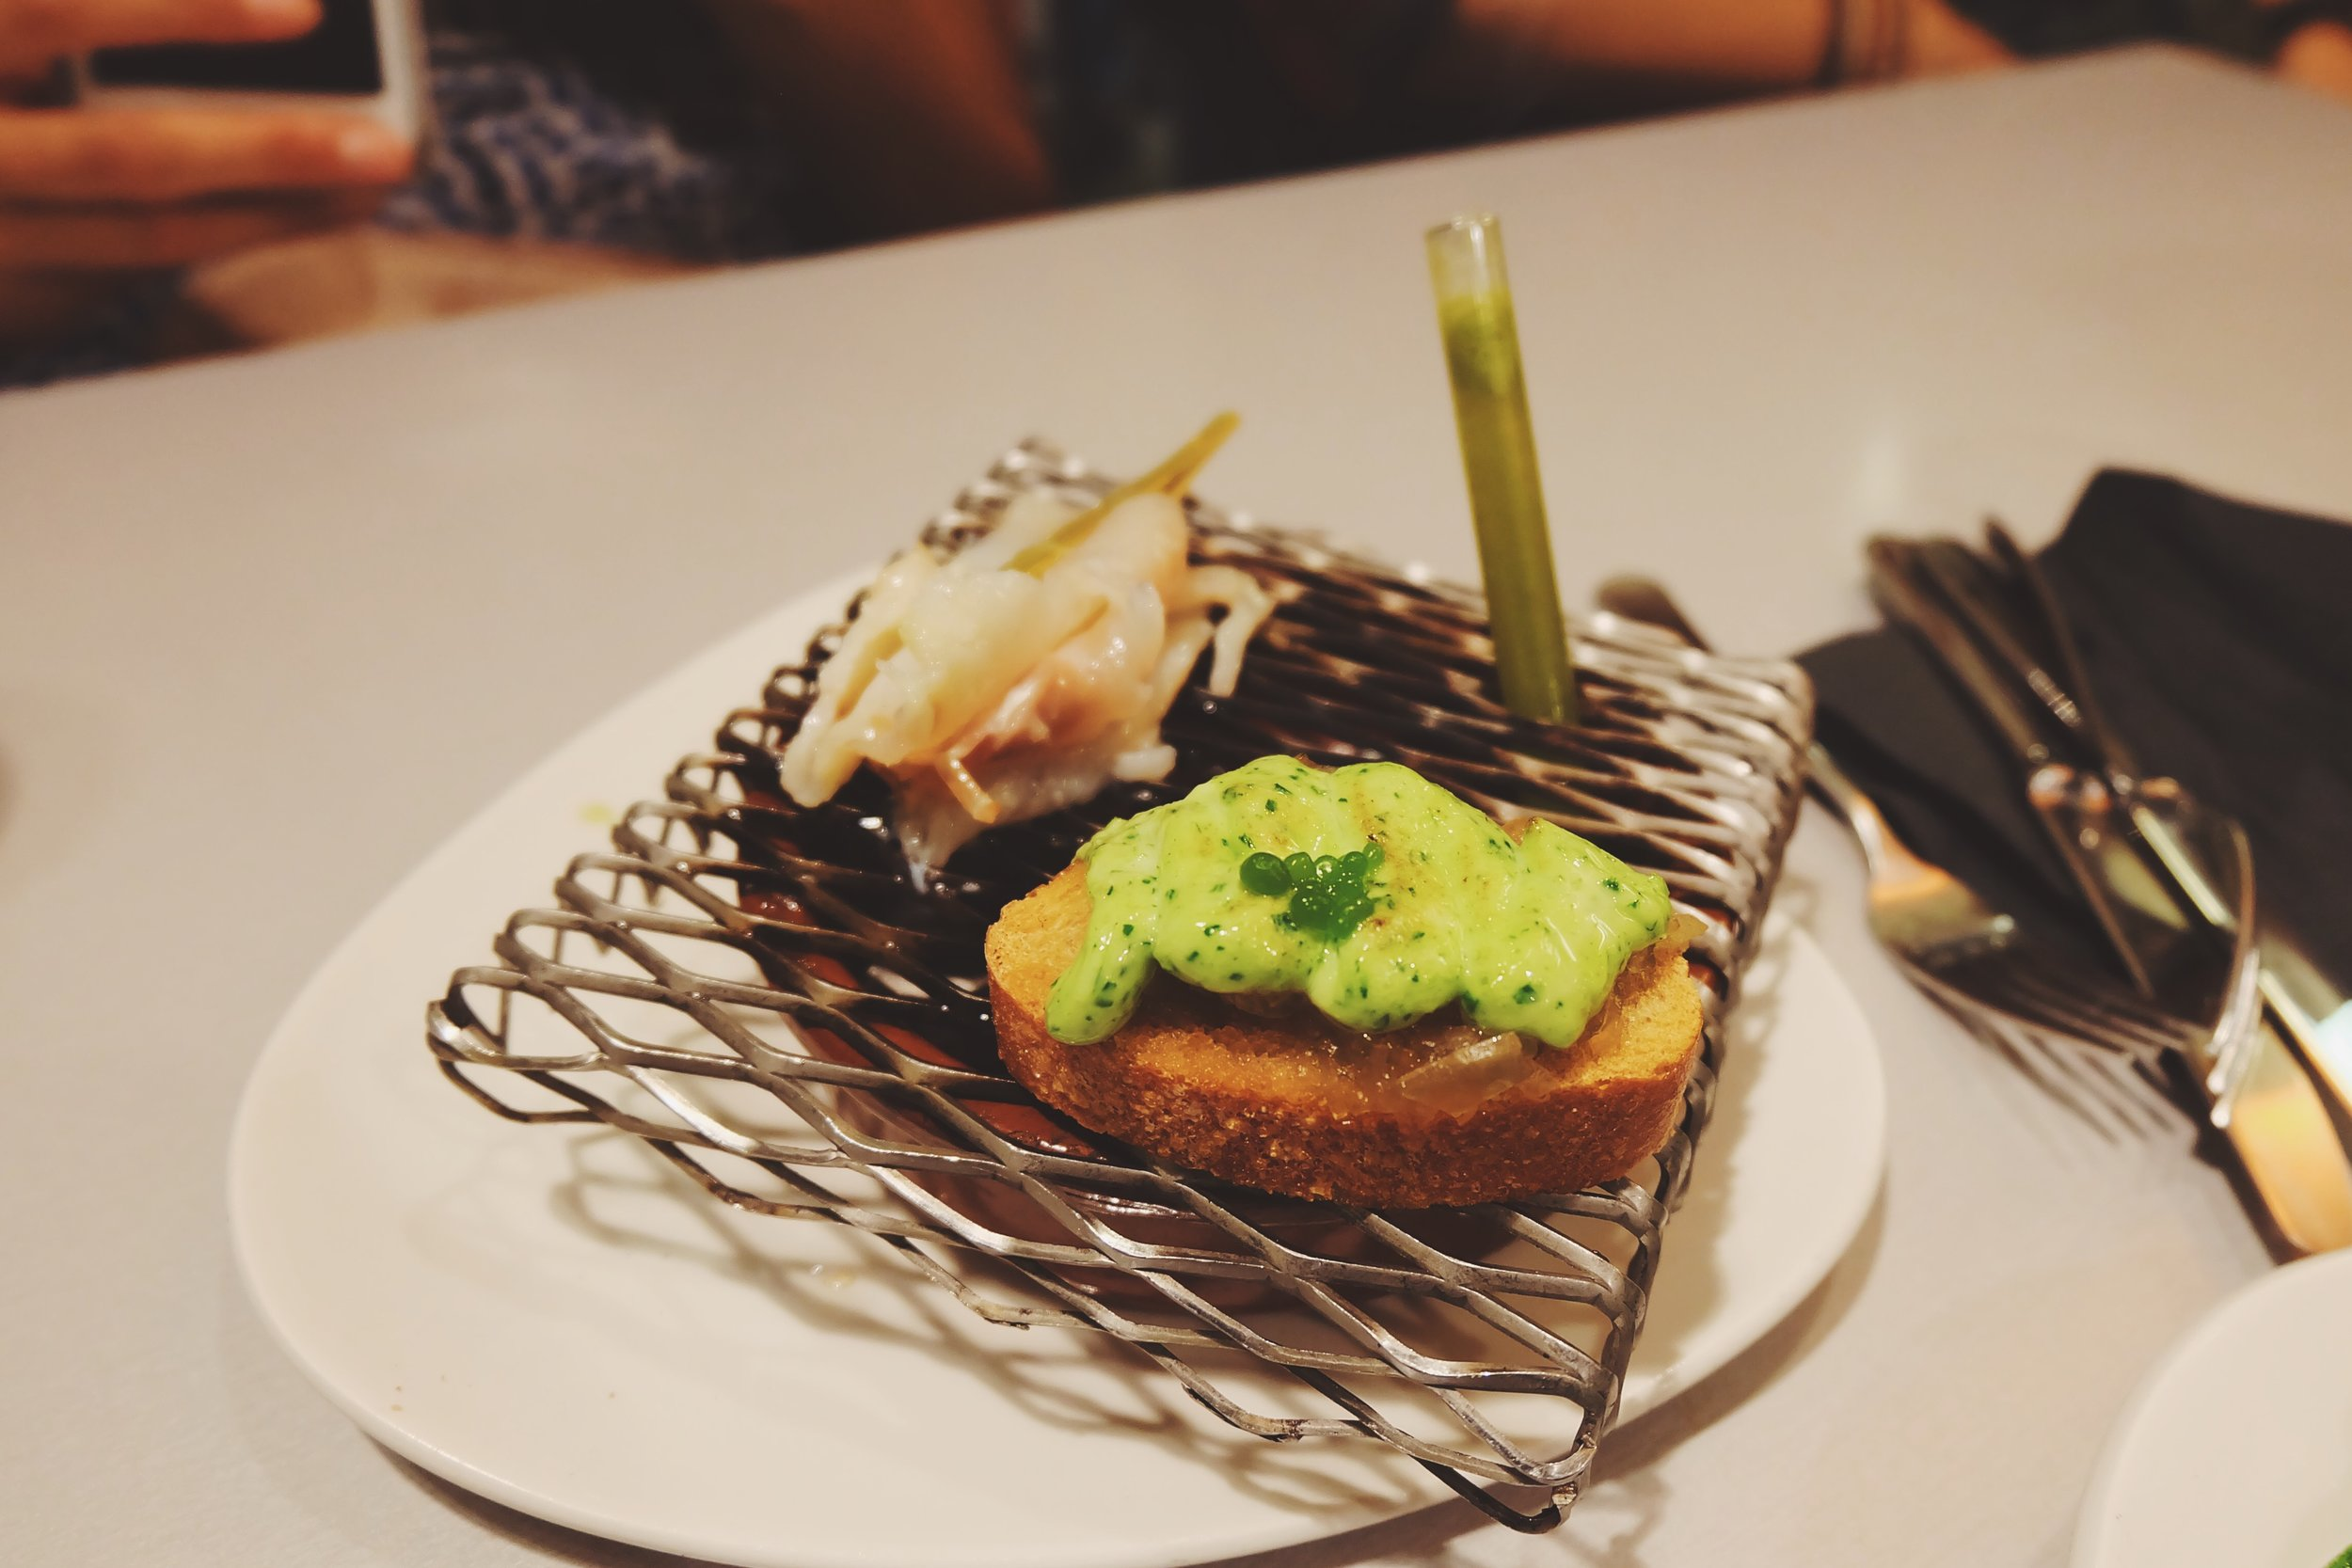 Grilled cod on toast with parsley mayonnaise (the cod is actually cooked on that)